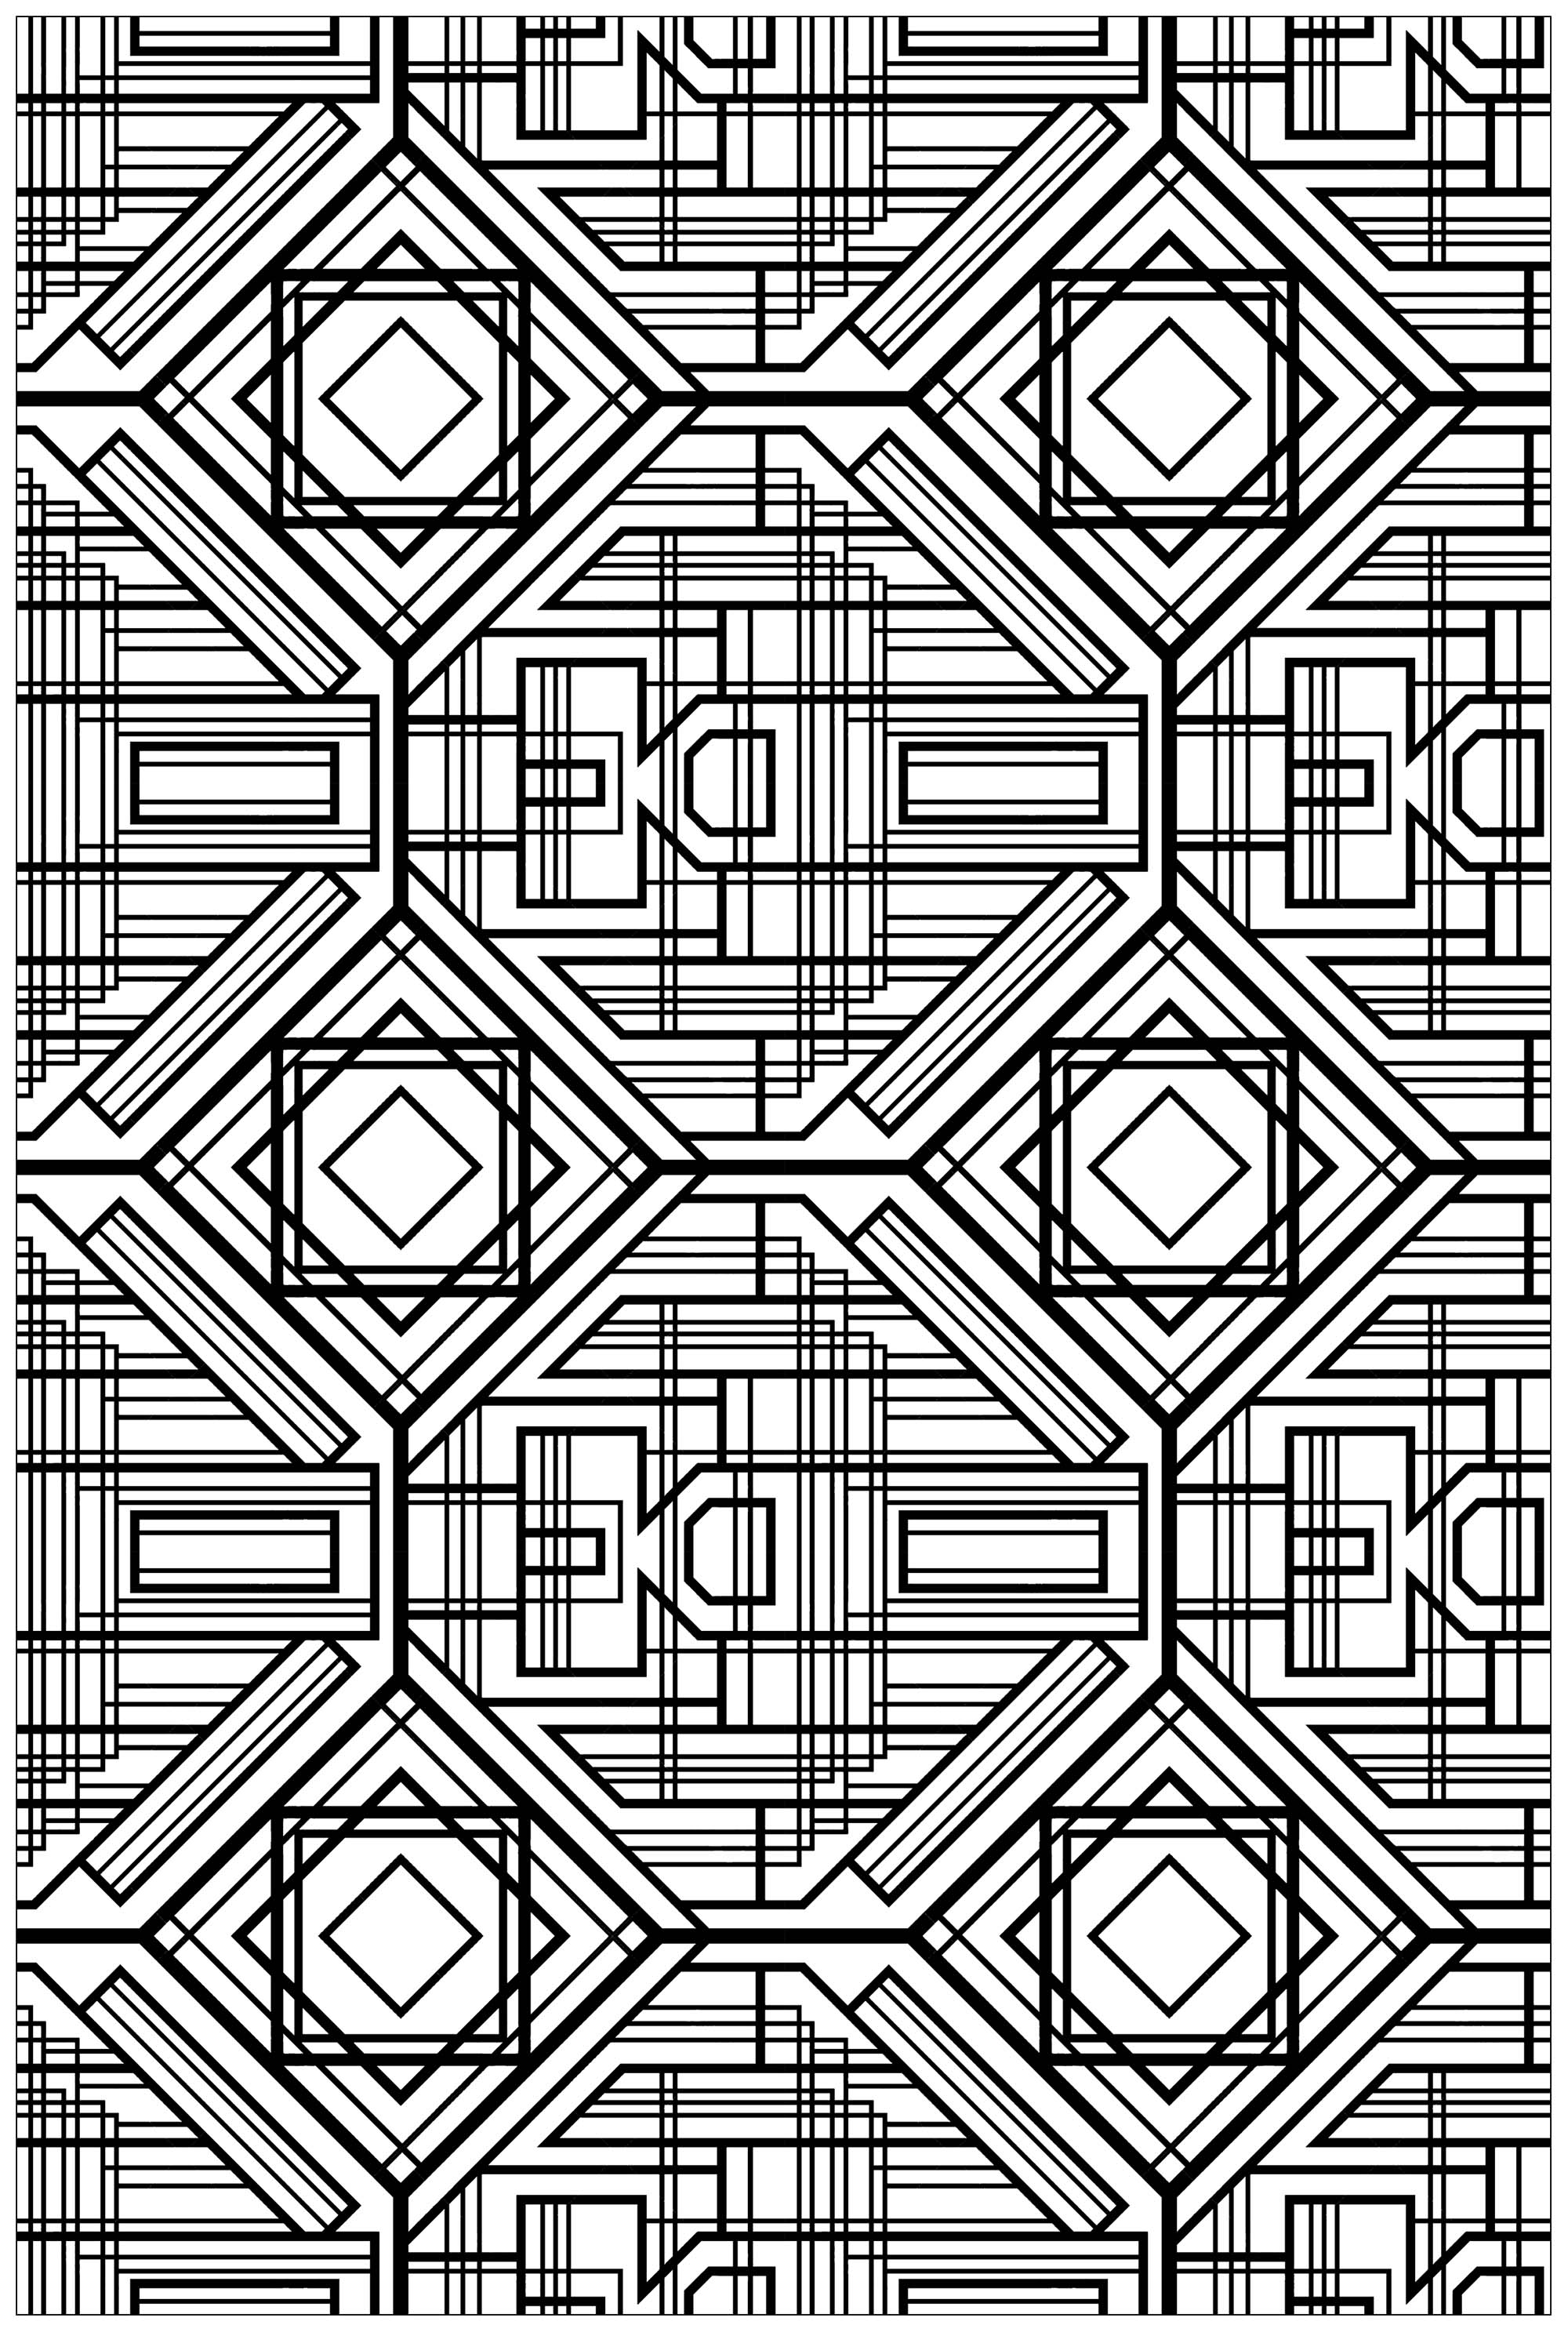 Complex Art Deco pattern